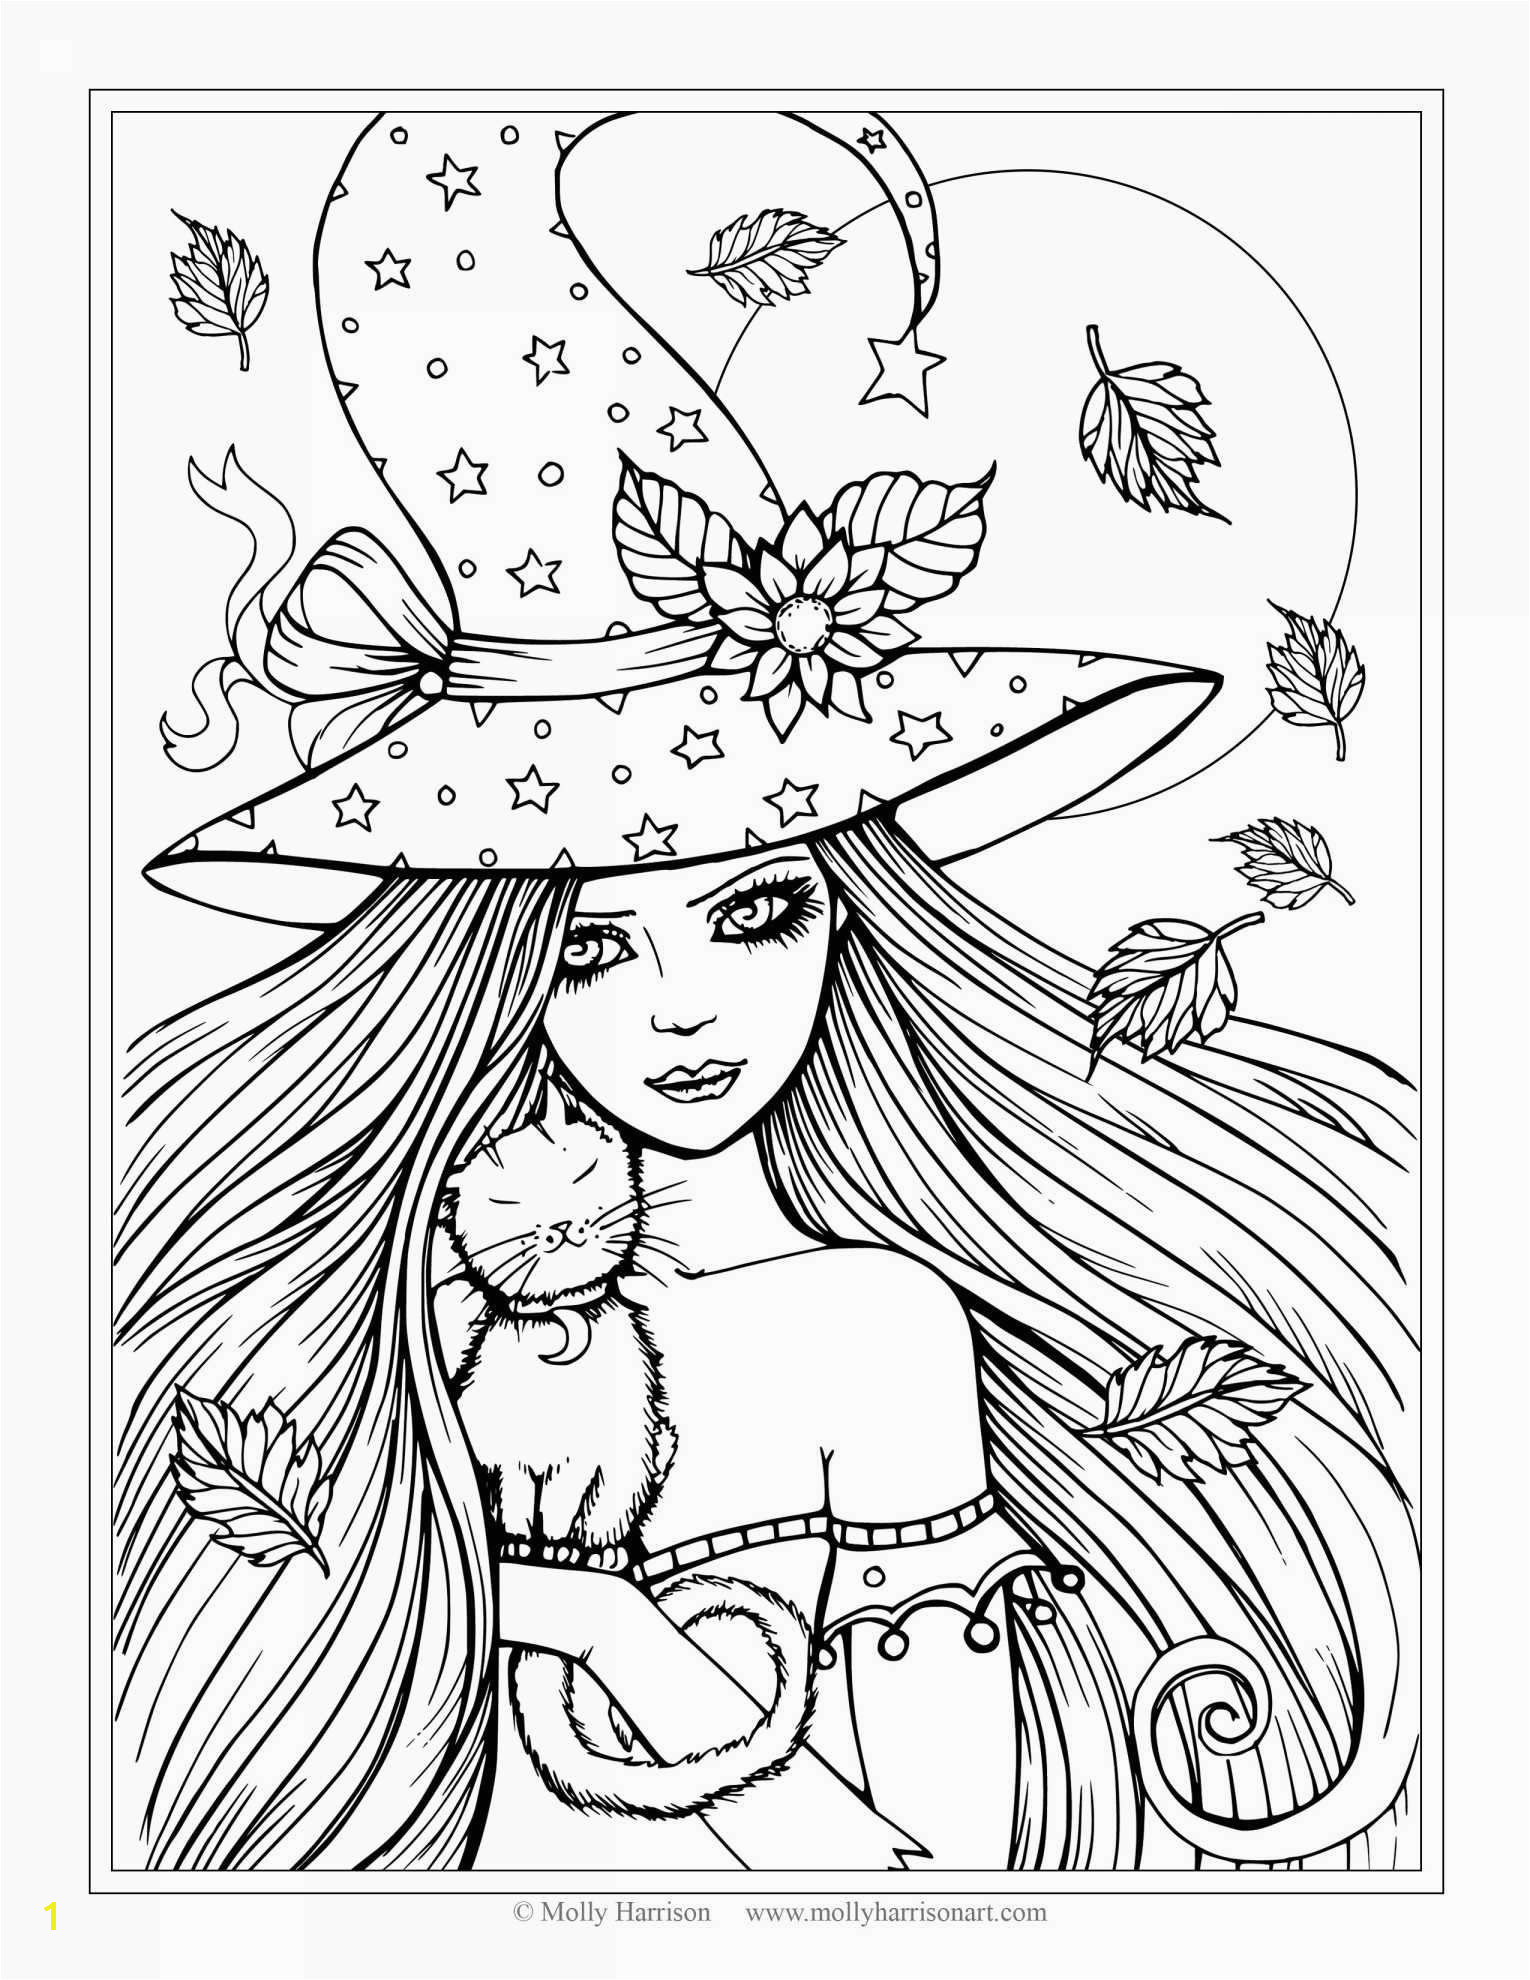 Disney Princesses Coloring Pages Frozen Princess Coloring Page Free Coloring Sheets Kids Printable Coloring Pages